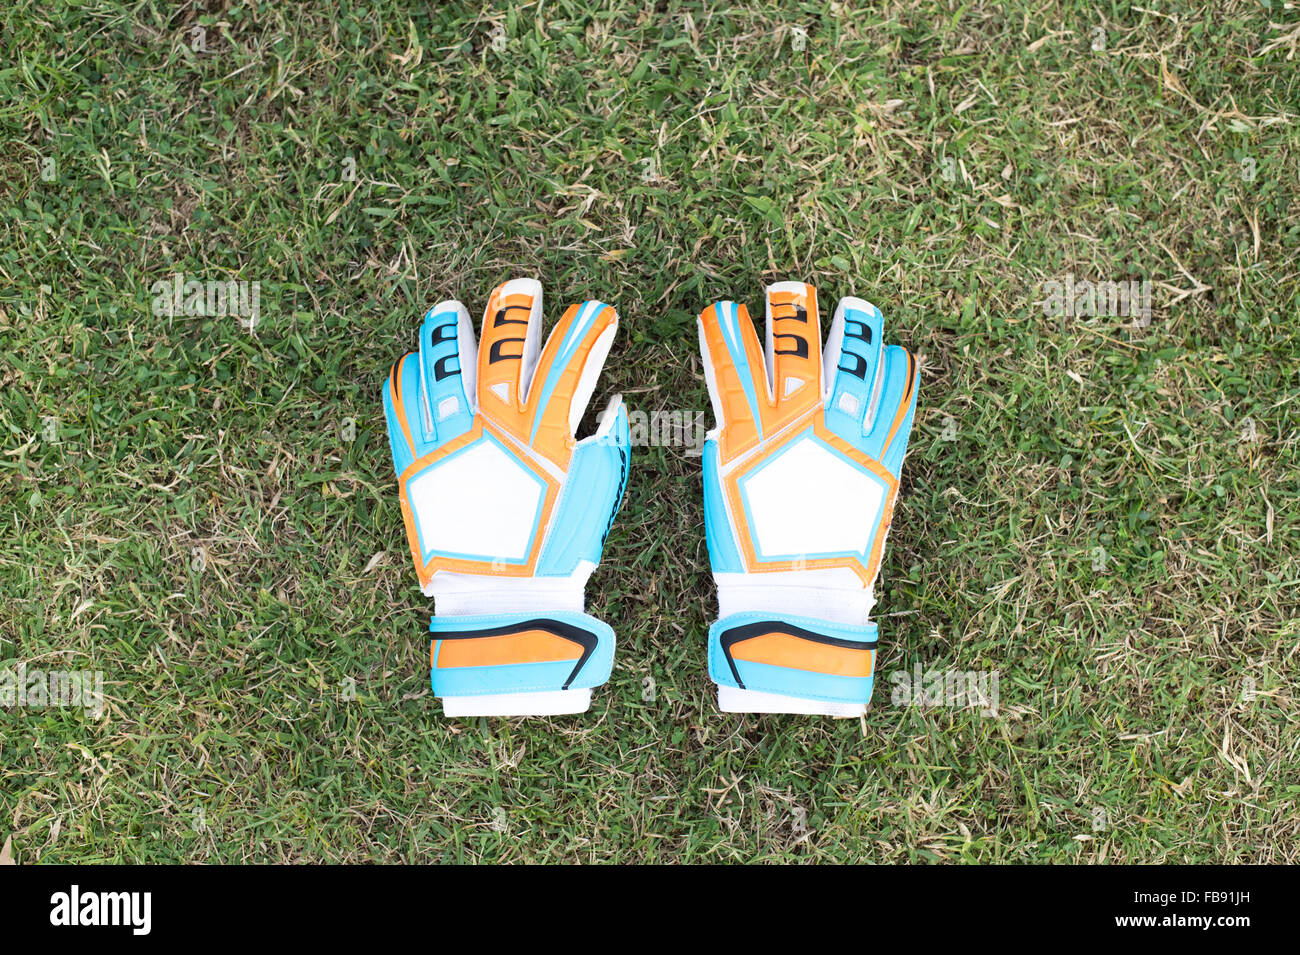 Goalkeeper Gloves Laying on the grass in the stadium - Stock Image